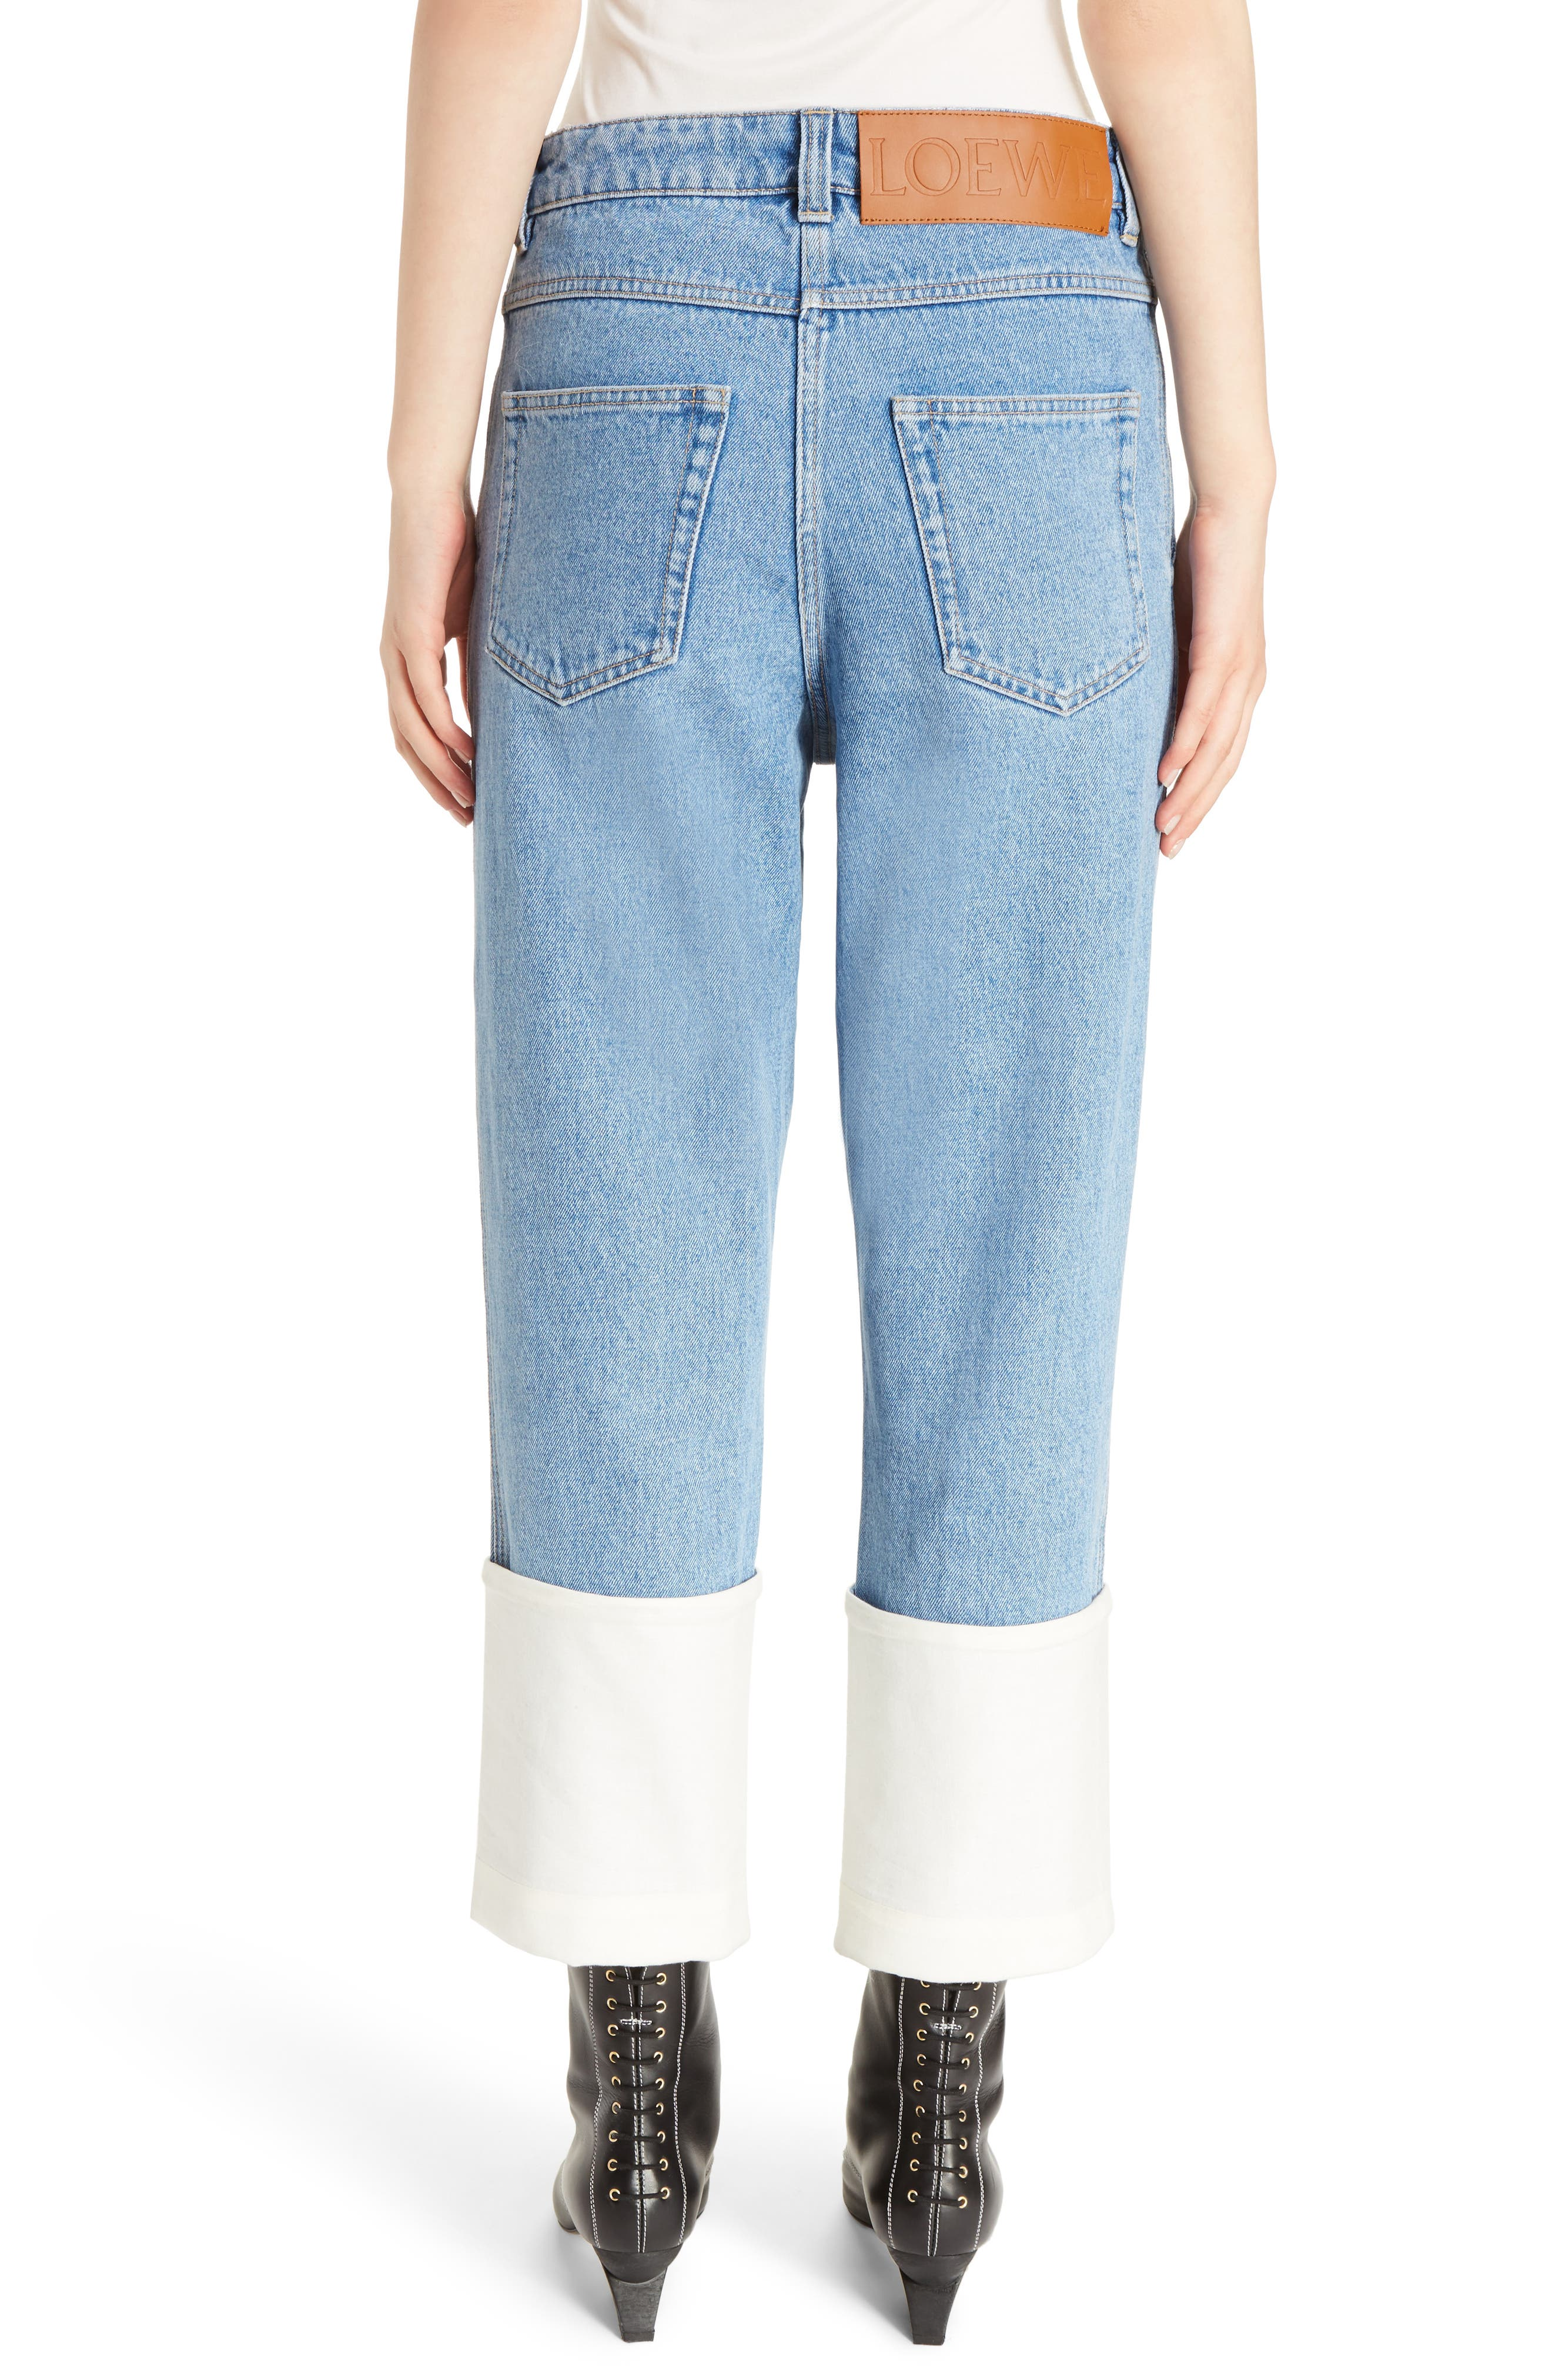 Fisherman Cuffed Jeans,                             Alternate thumbnail 2, color,                             Blue